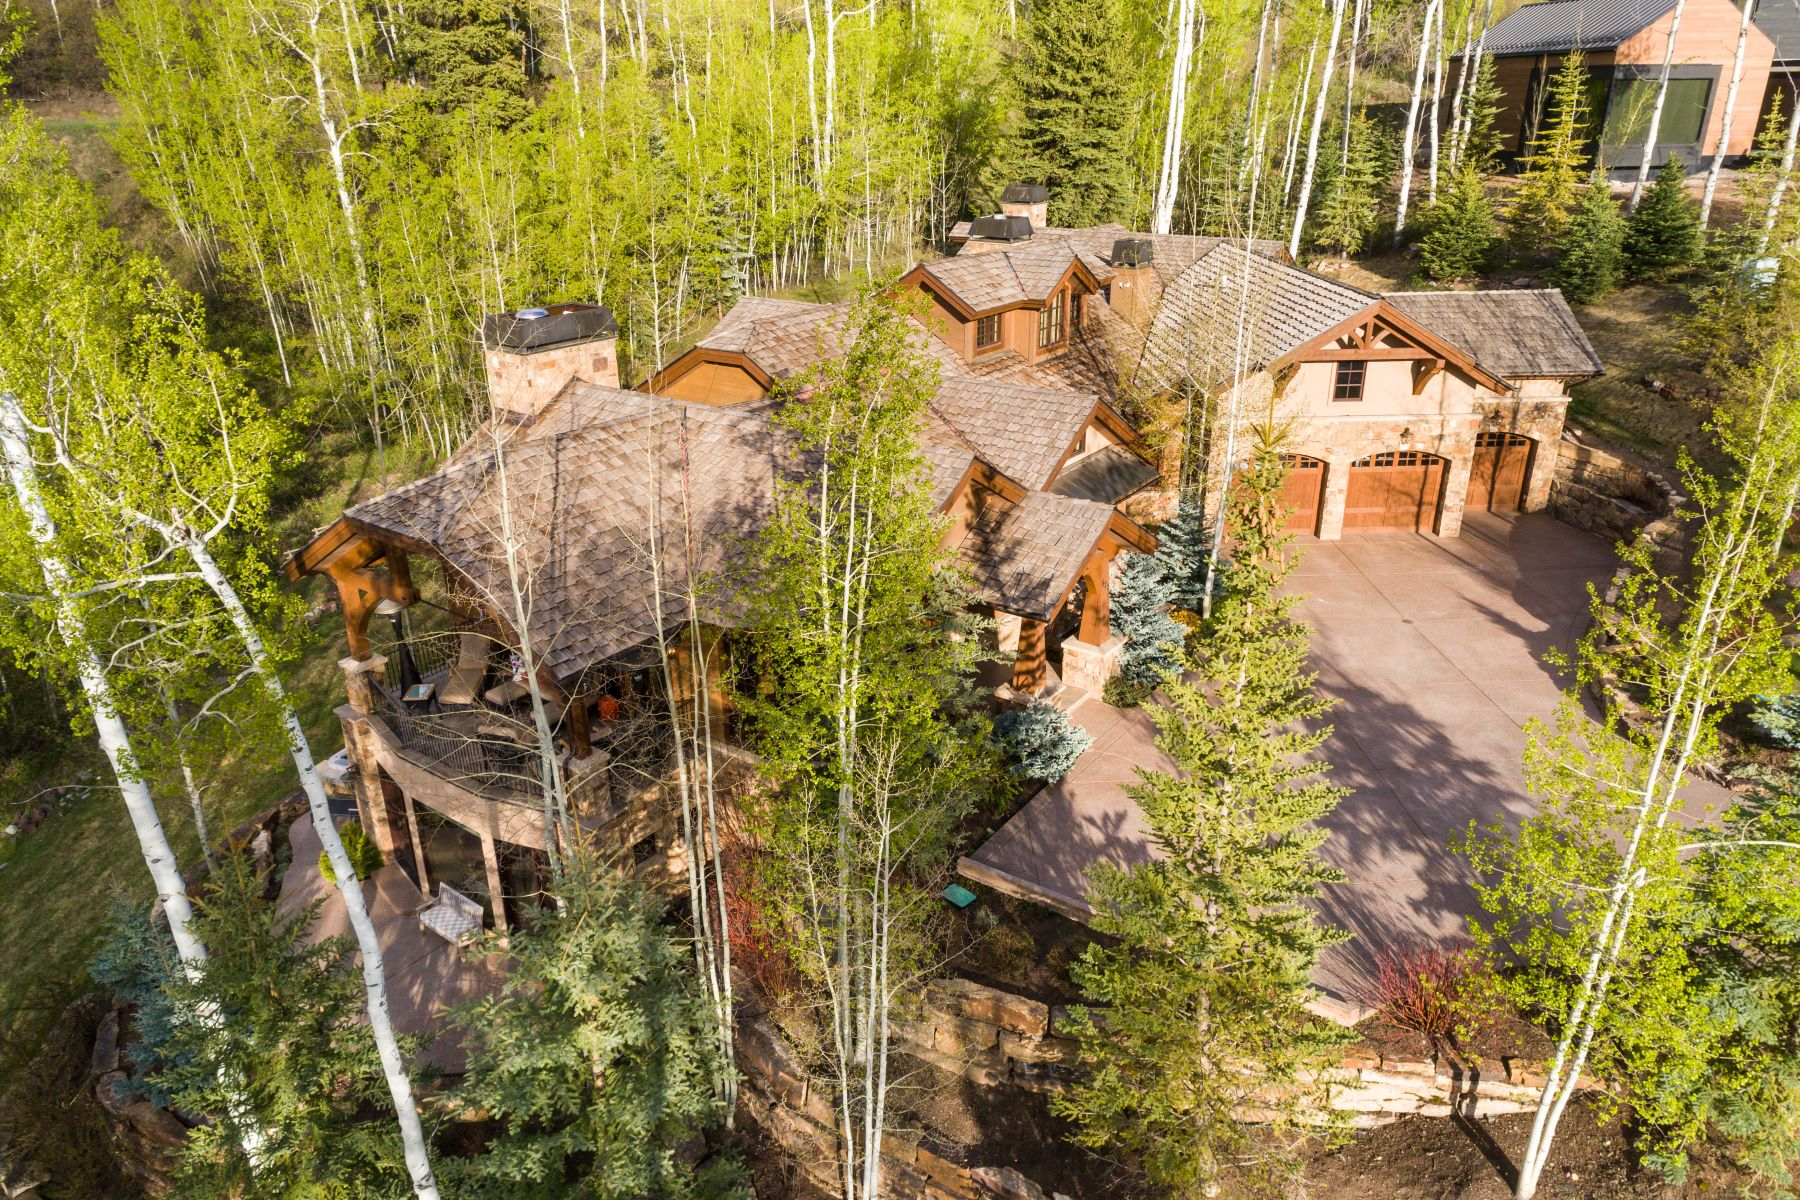 Single Family Homes for Sale at Privacy in The Pines 522 Pine Crest Drive Snowmass Village, Colorado 81615 United States